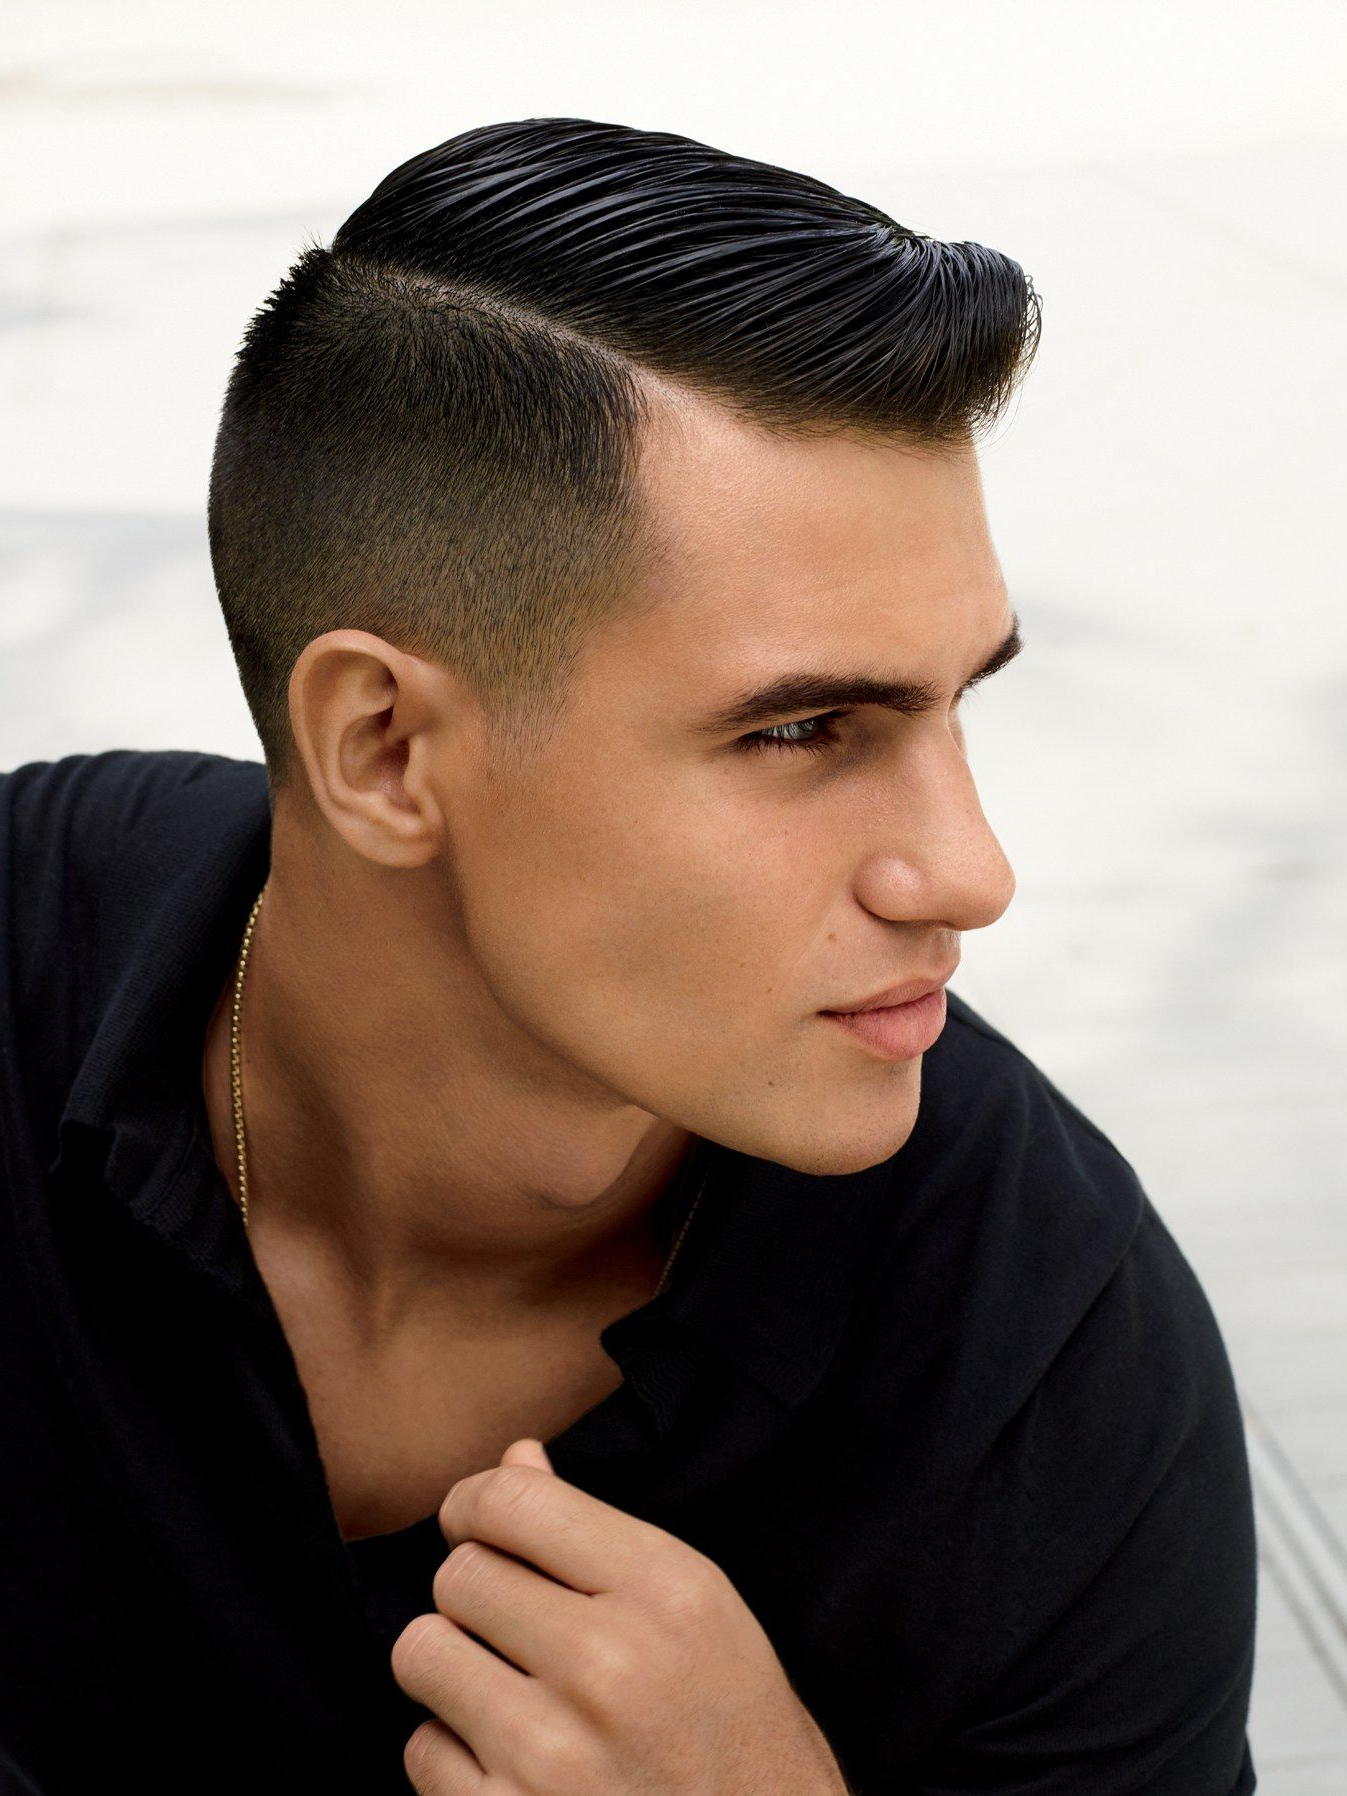 The Best Short Haircut For Men This Summer | Hairstyles | Pinterest Pertaining To Summer Short Haircuts (View 21 of 25)